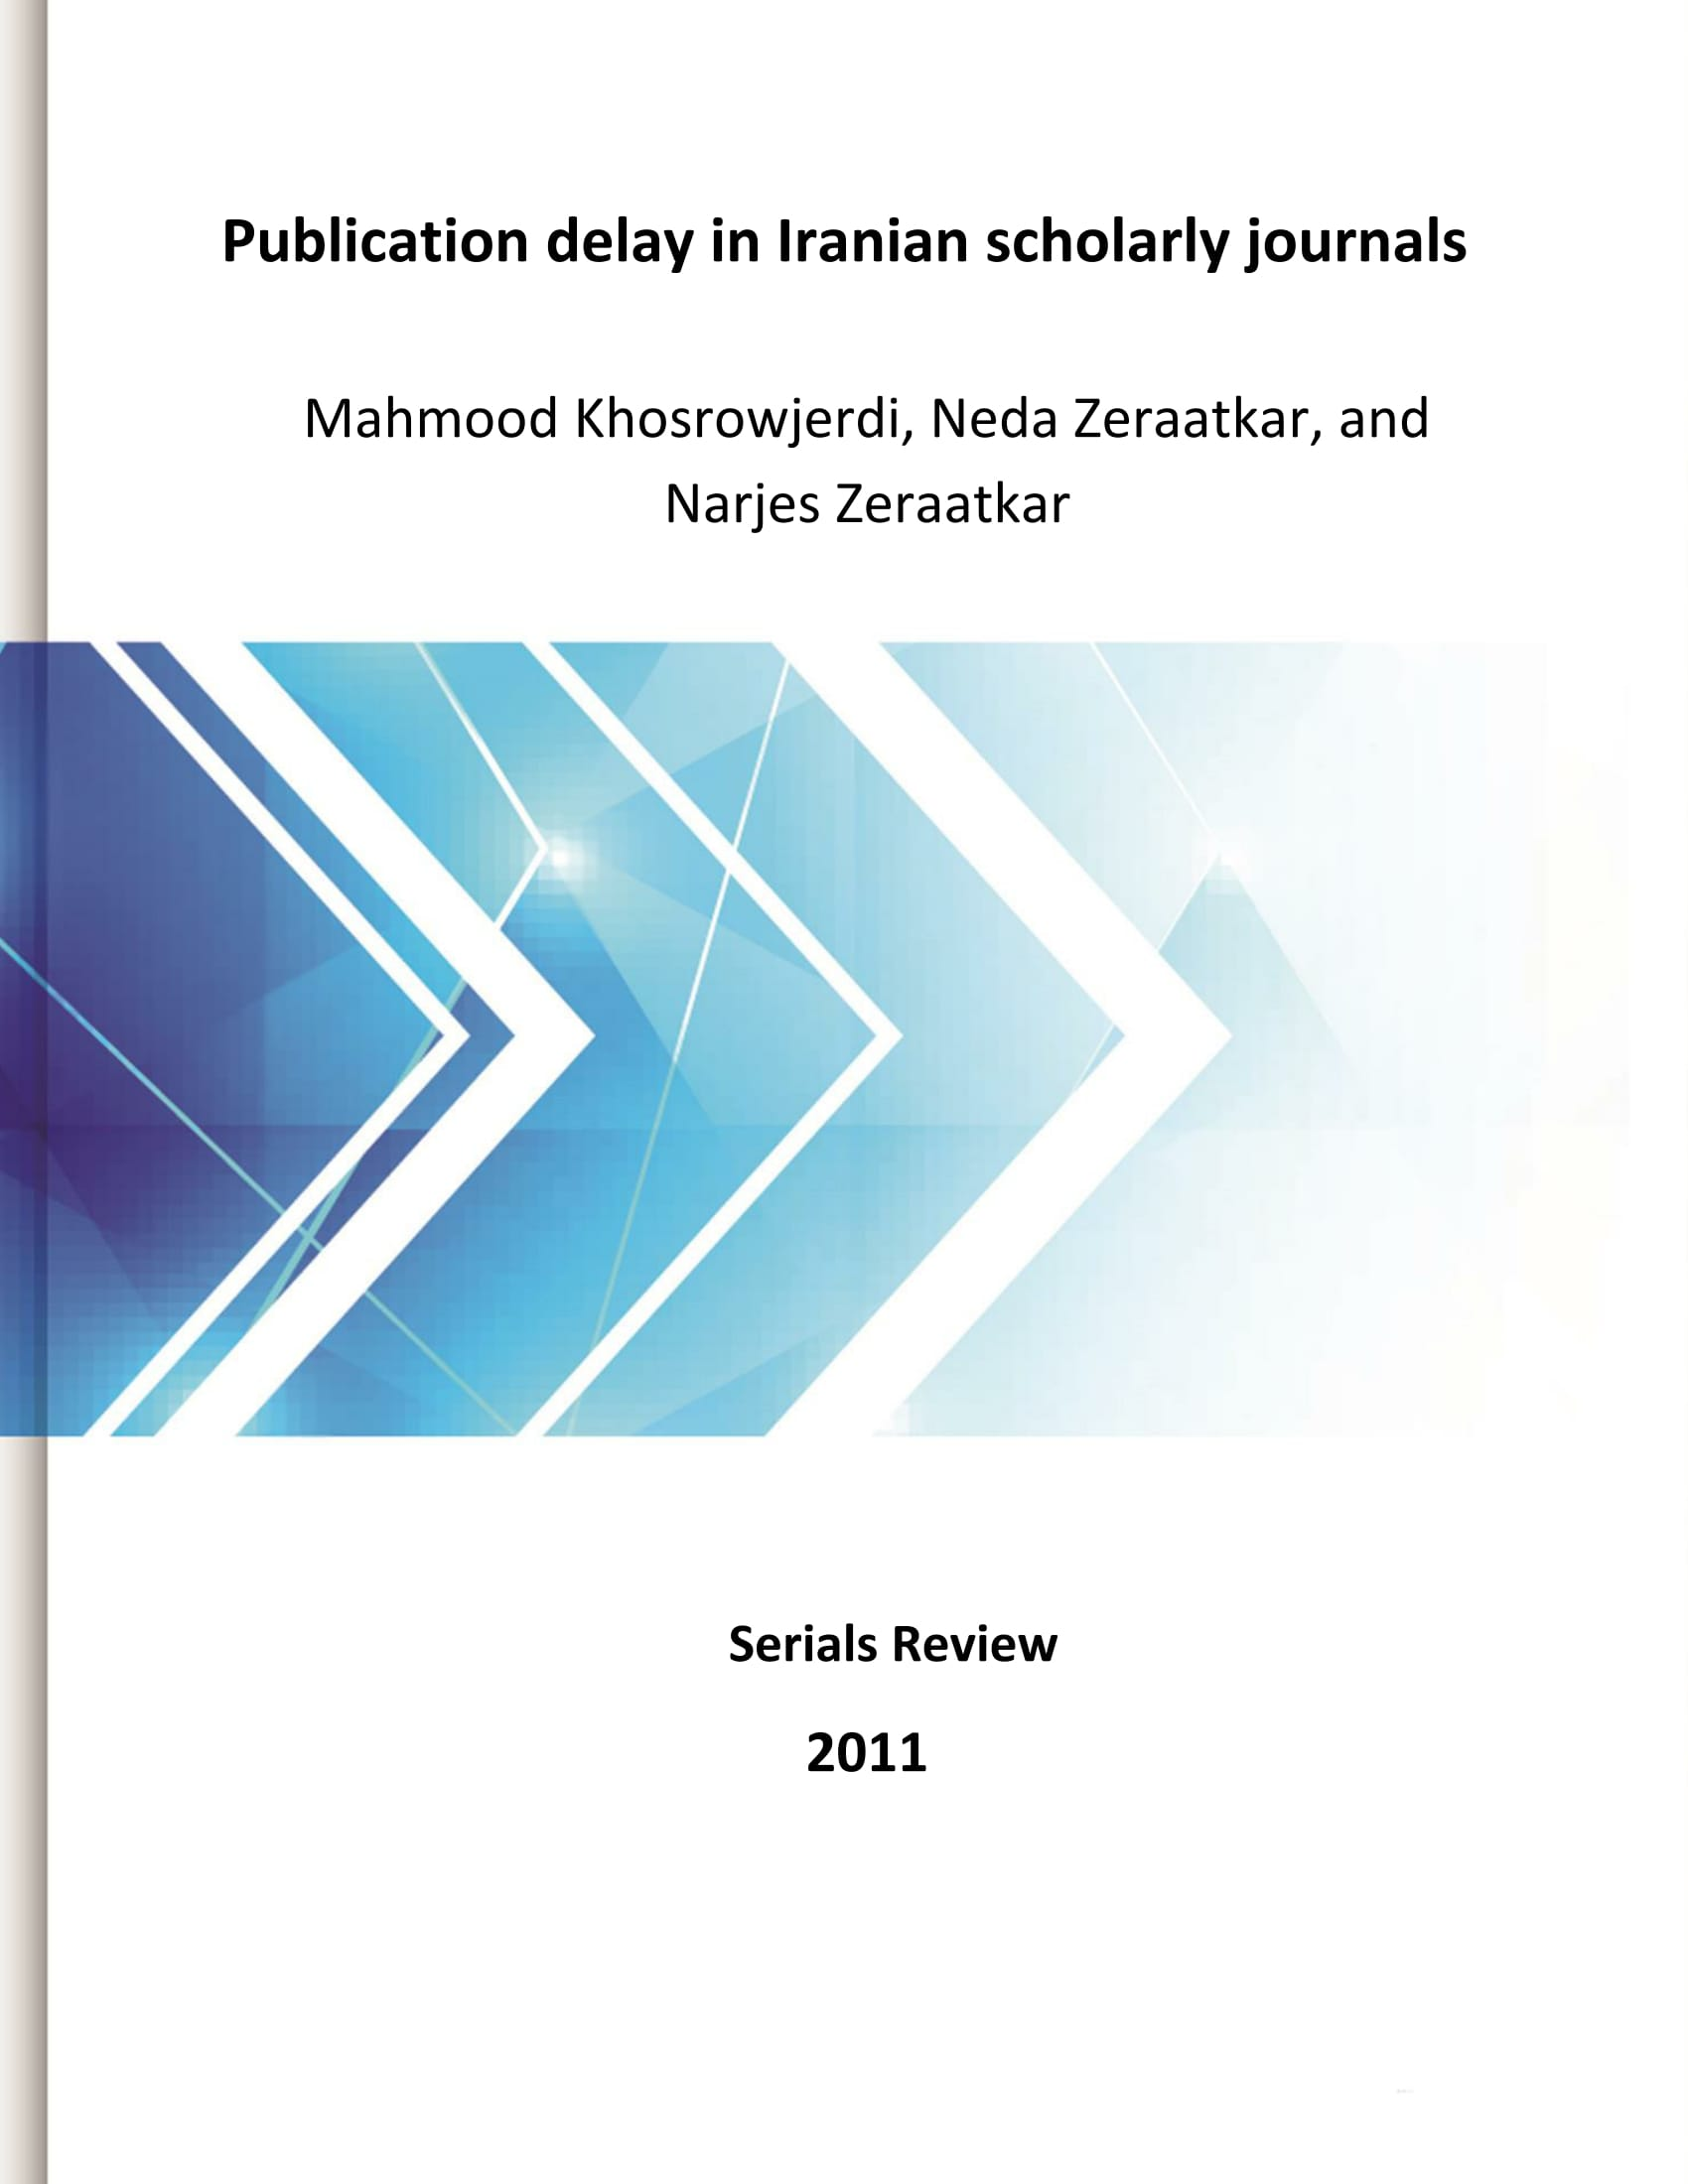 Publication delay in Iranian scholarly journals